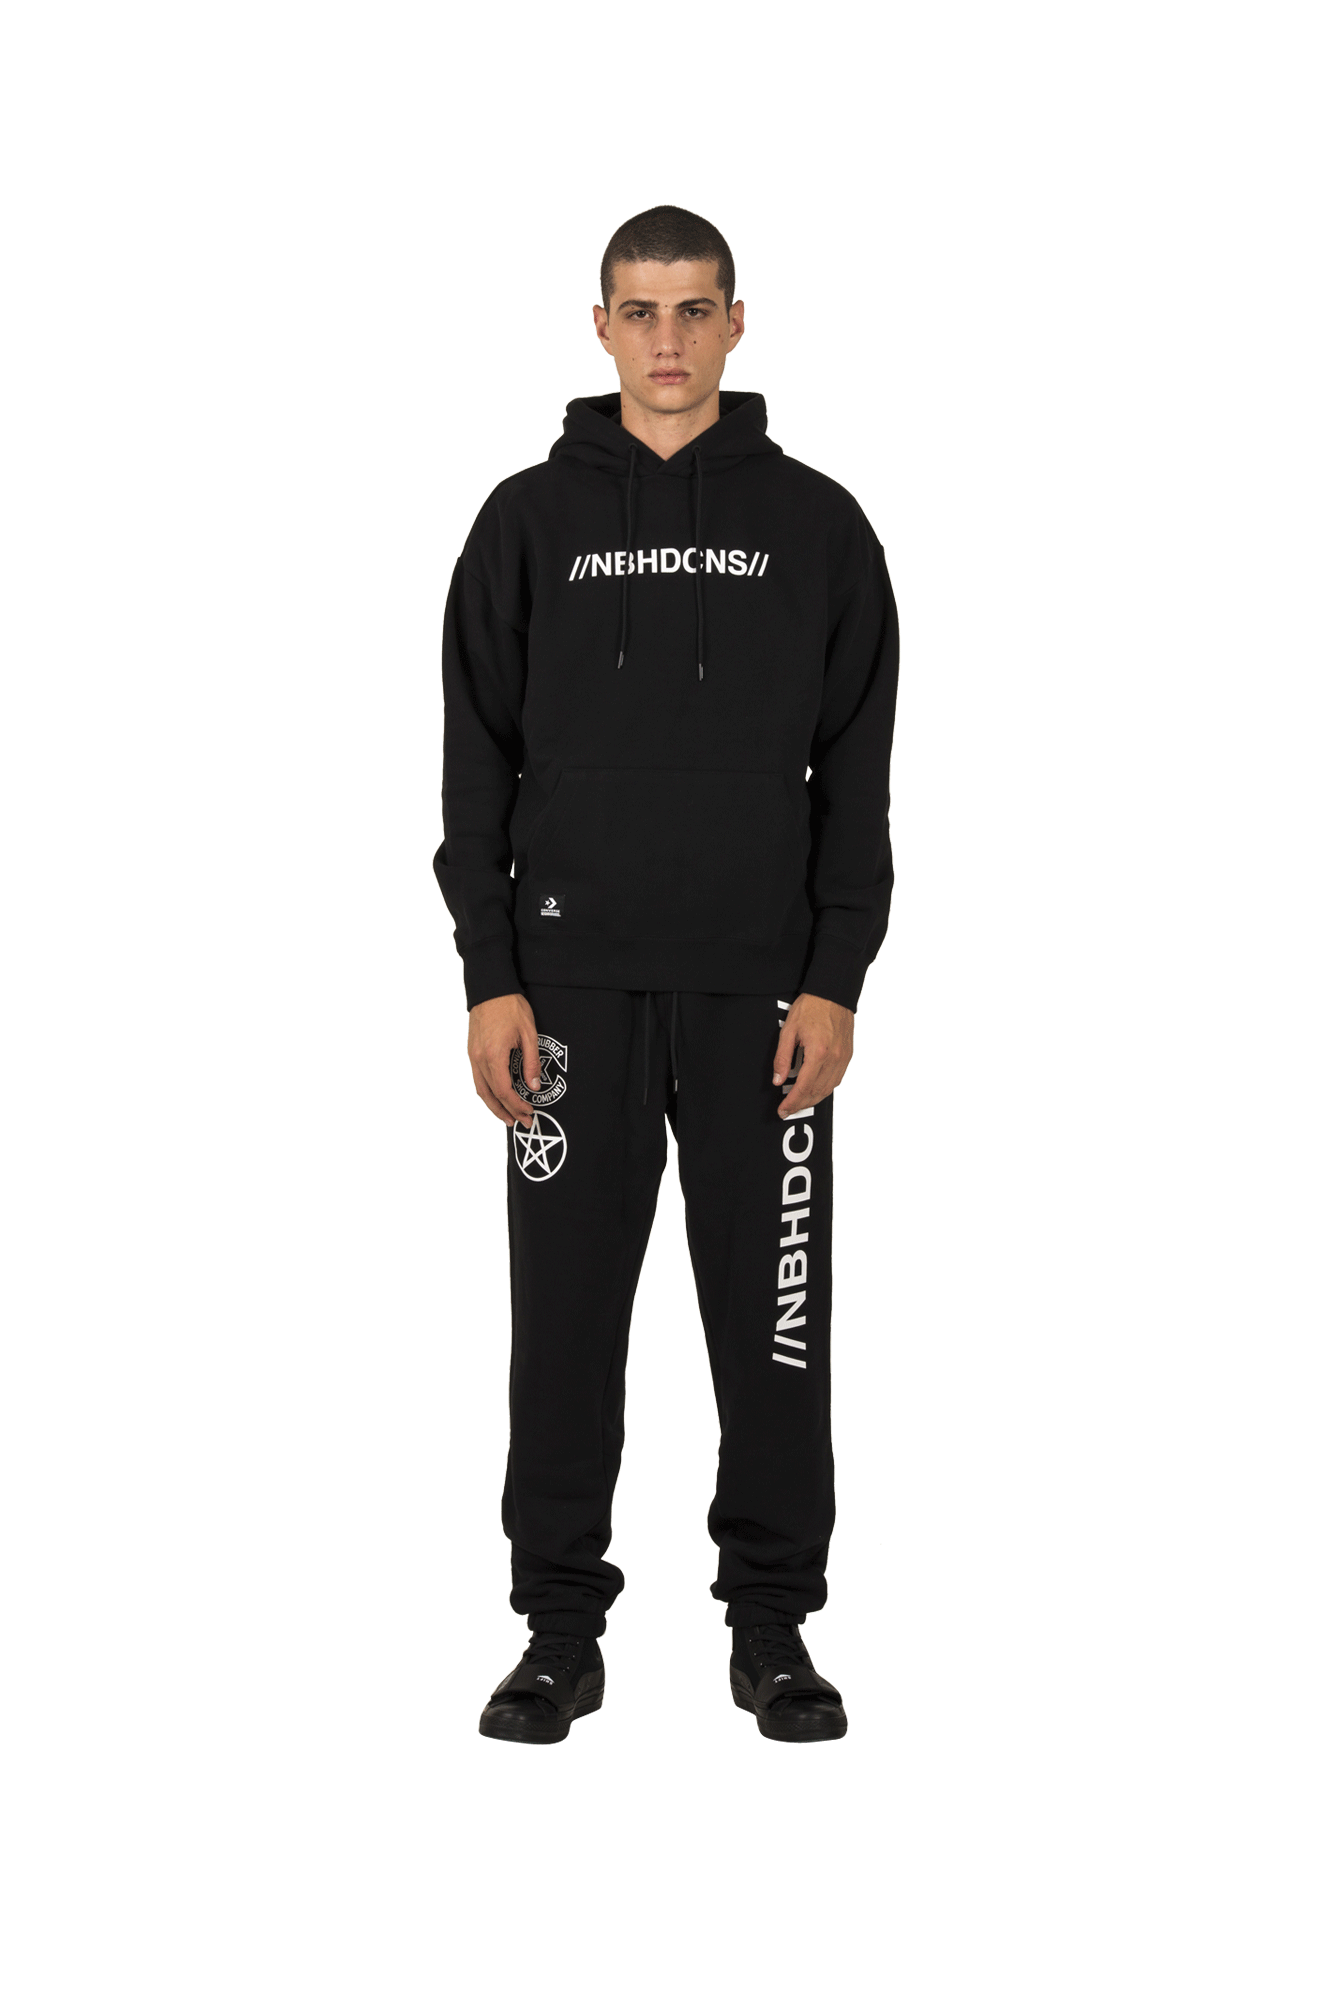 Hoodie  x Neighborhood Black